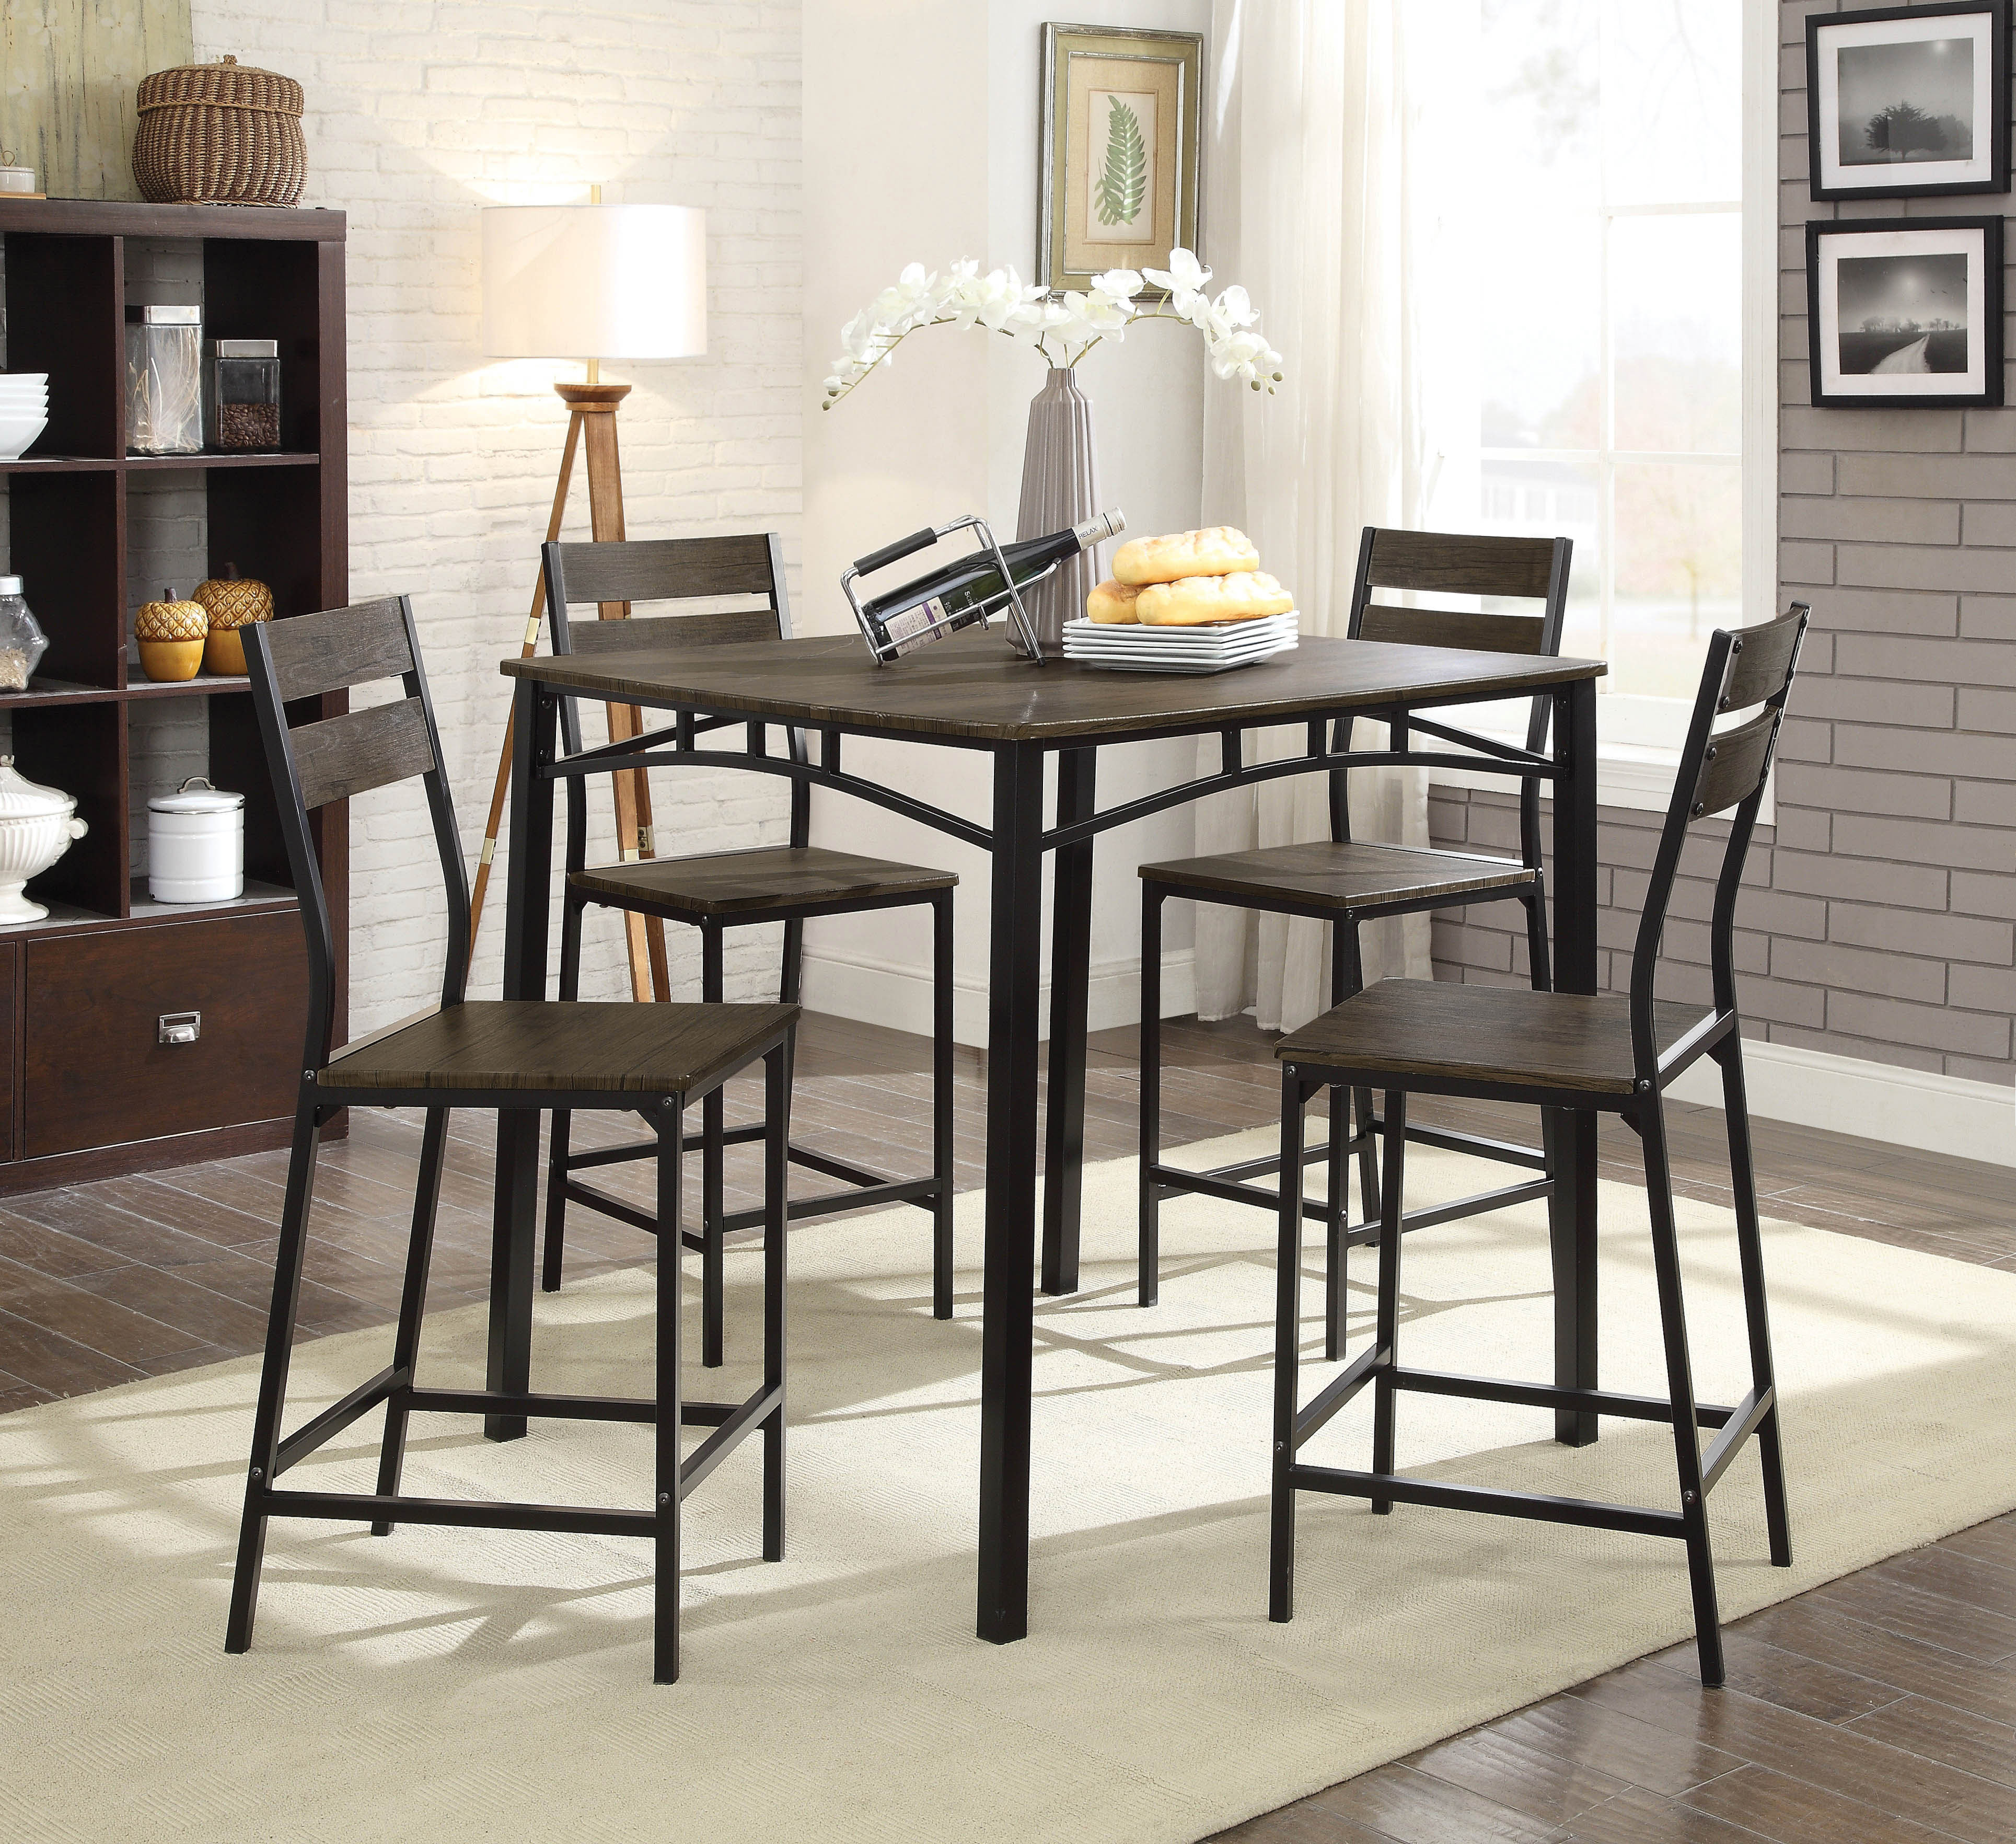 Widely Used Autberry 5 Piece Dining Sets With Regard To Gracie Oaks Autberry 5 Piece Pub Table Set (#19 of 20)